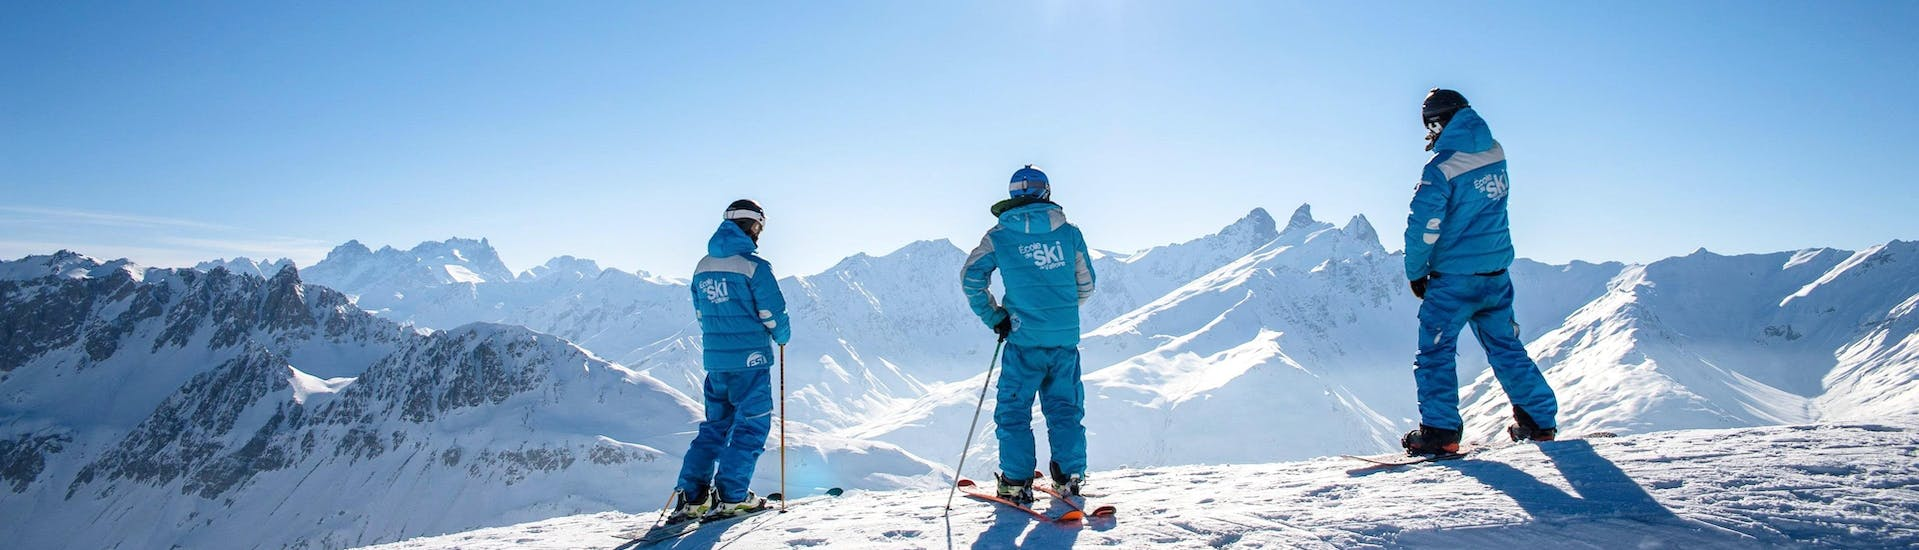 private-ski-lessons-for-adults-february-all-levels-360-les-gets-hero